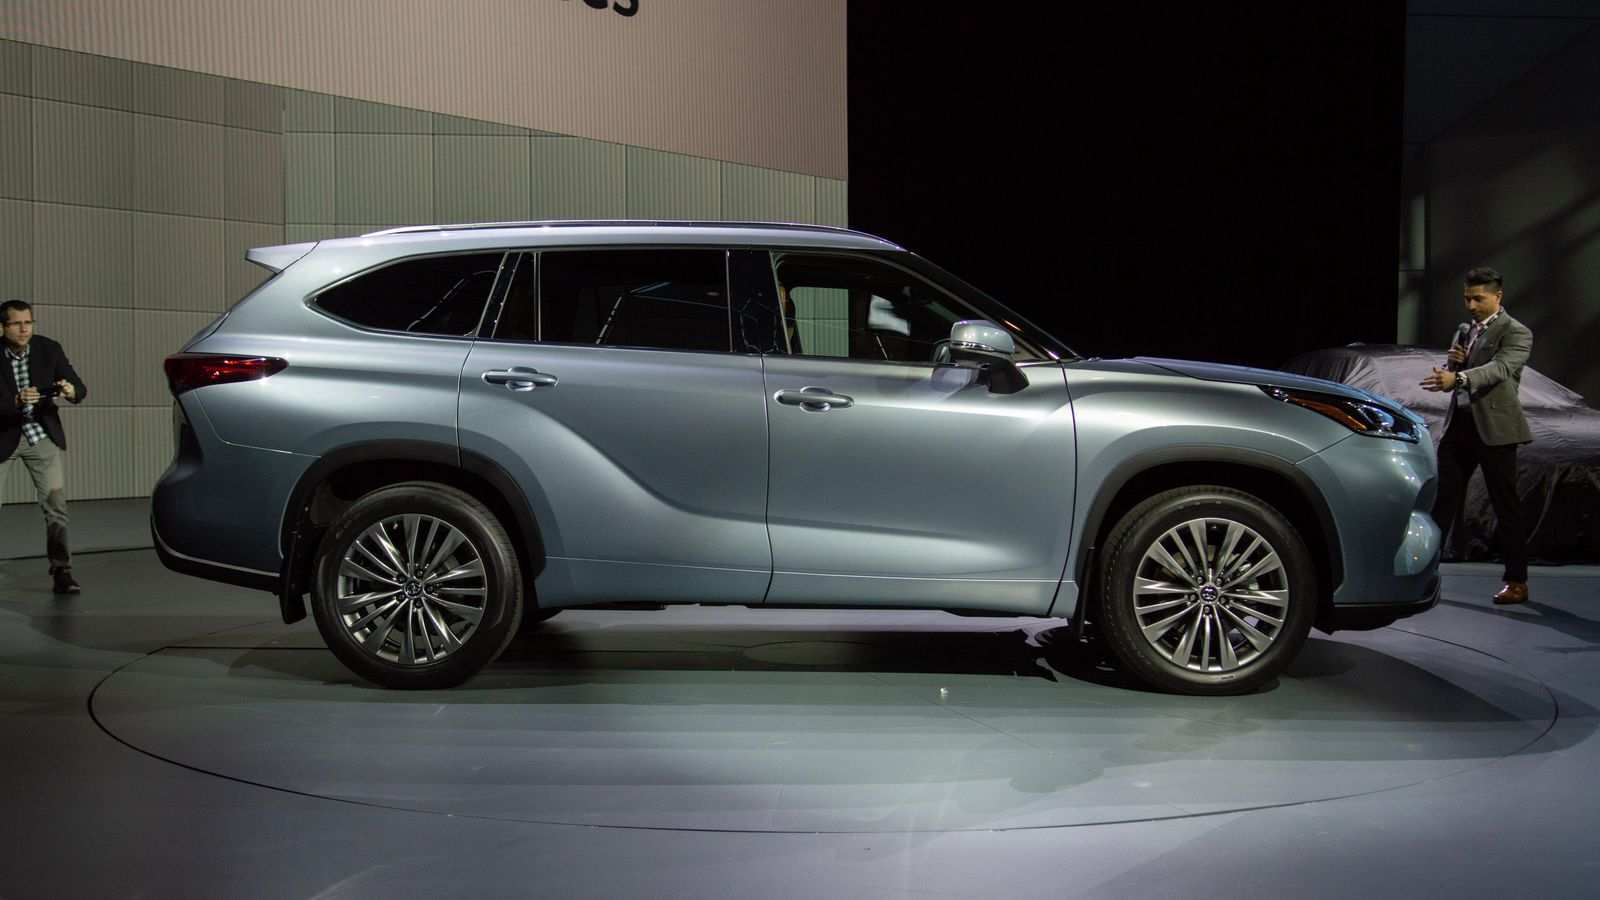 62 All New Toyota Kluger New 2020 Concept And Review